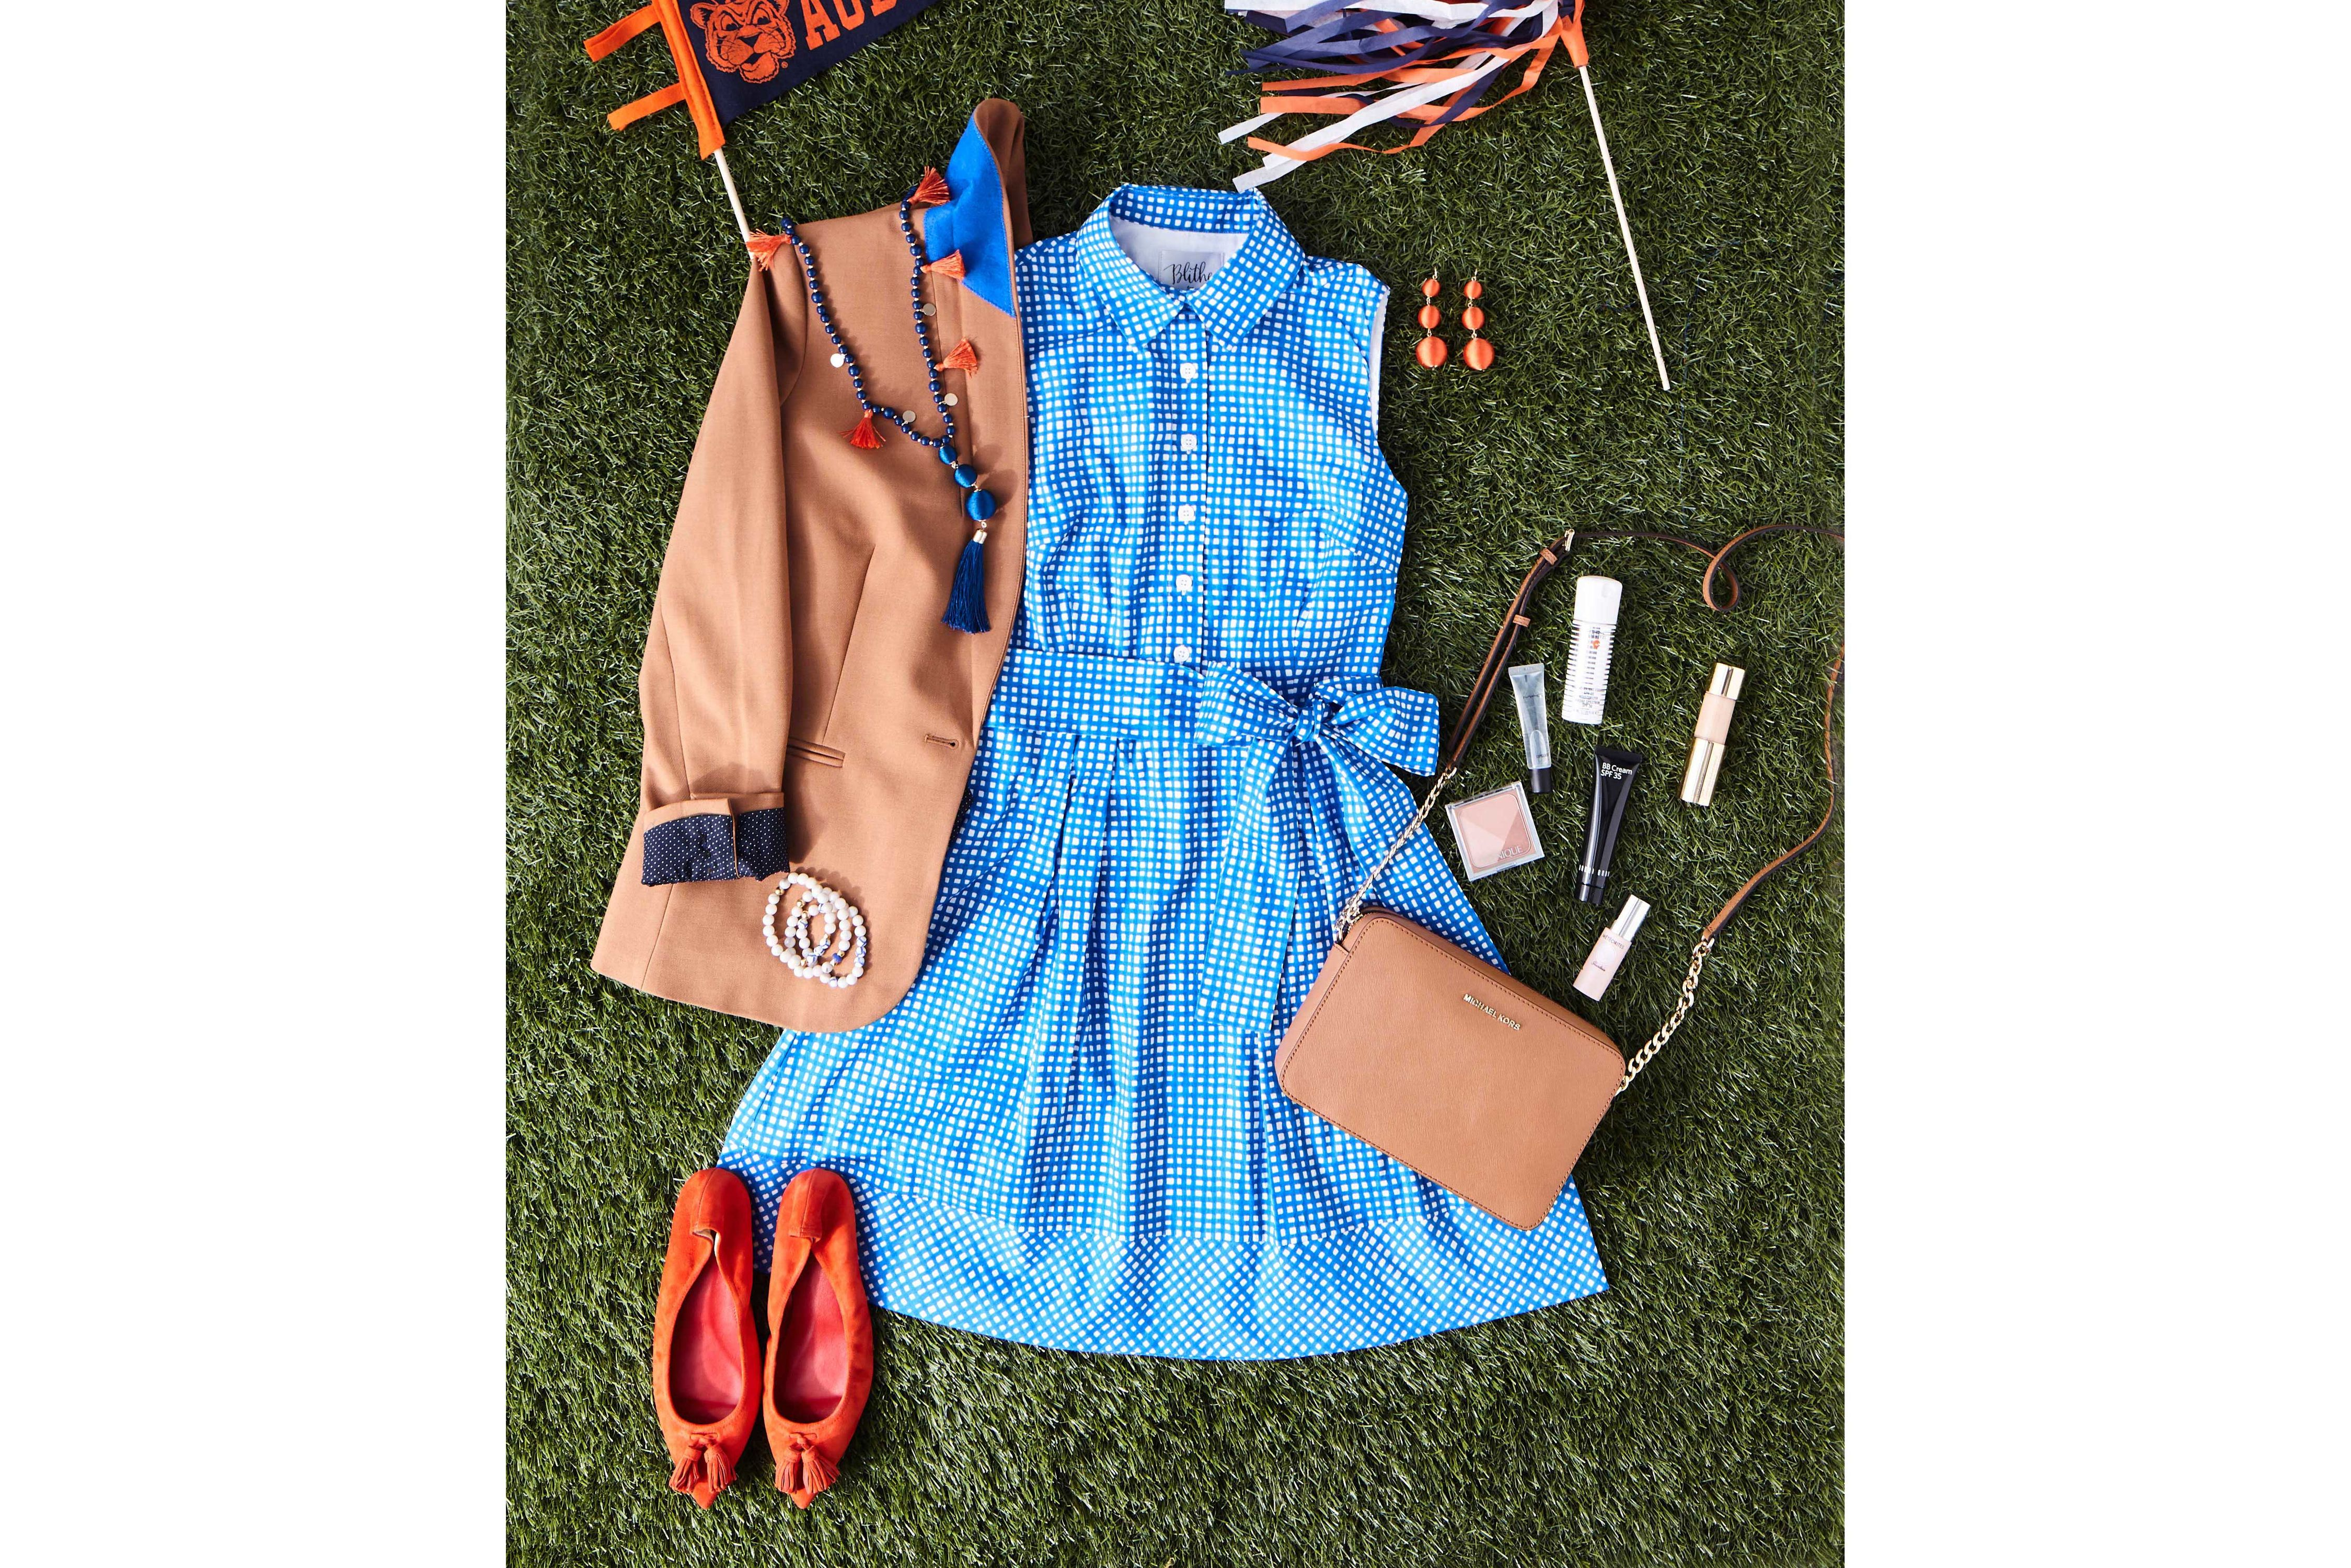 Game Day Looks Inspired by Our Favorite Southern Living Dress